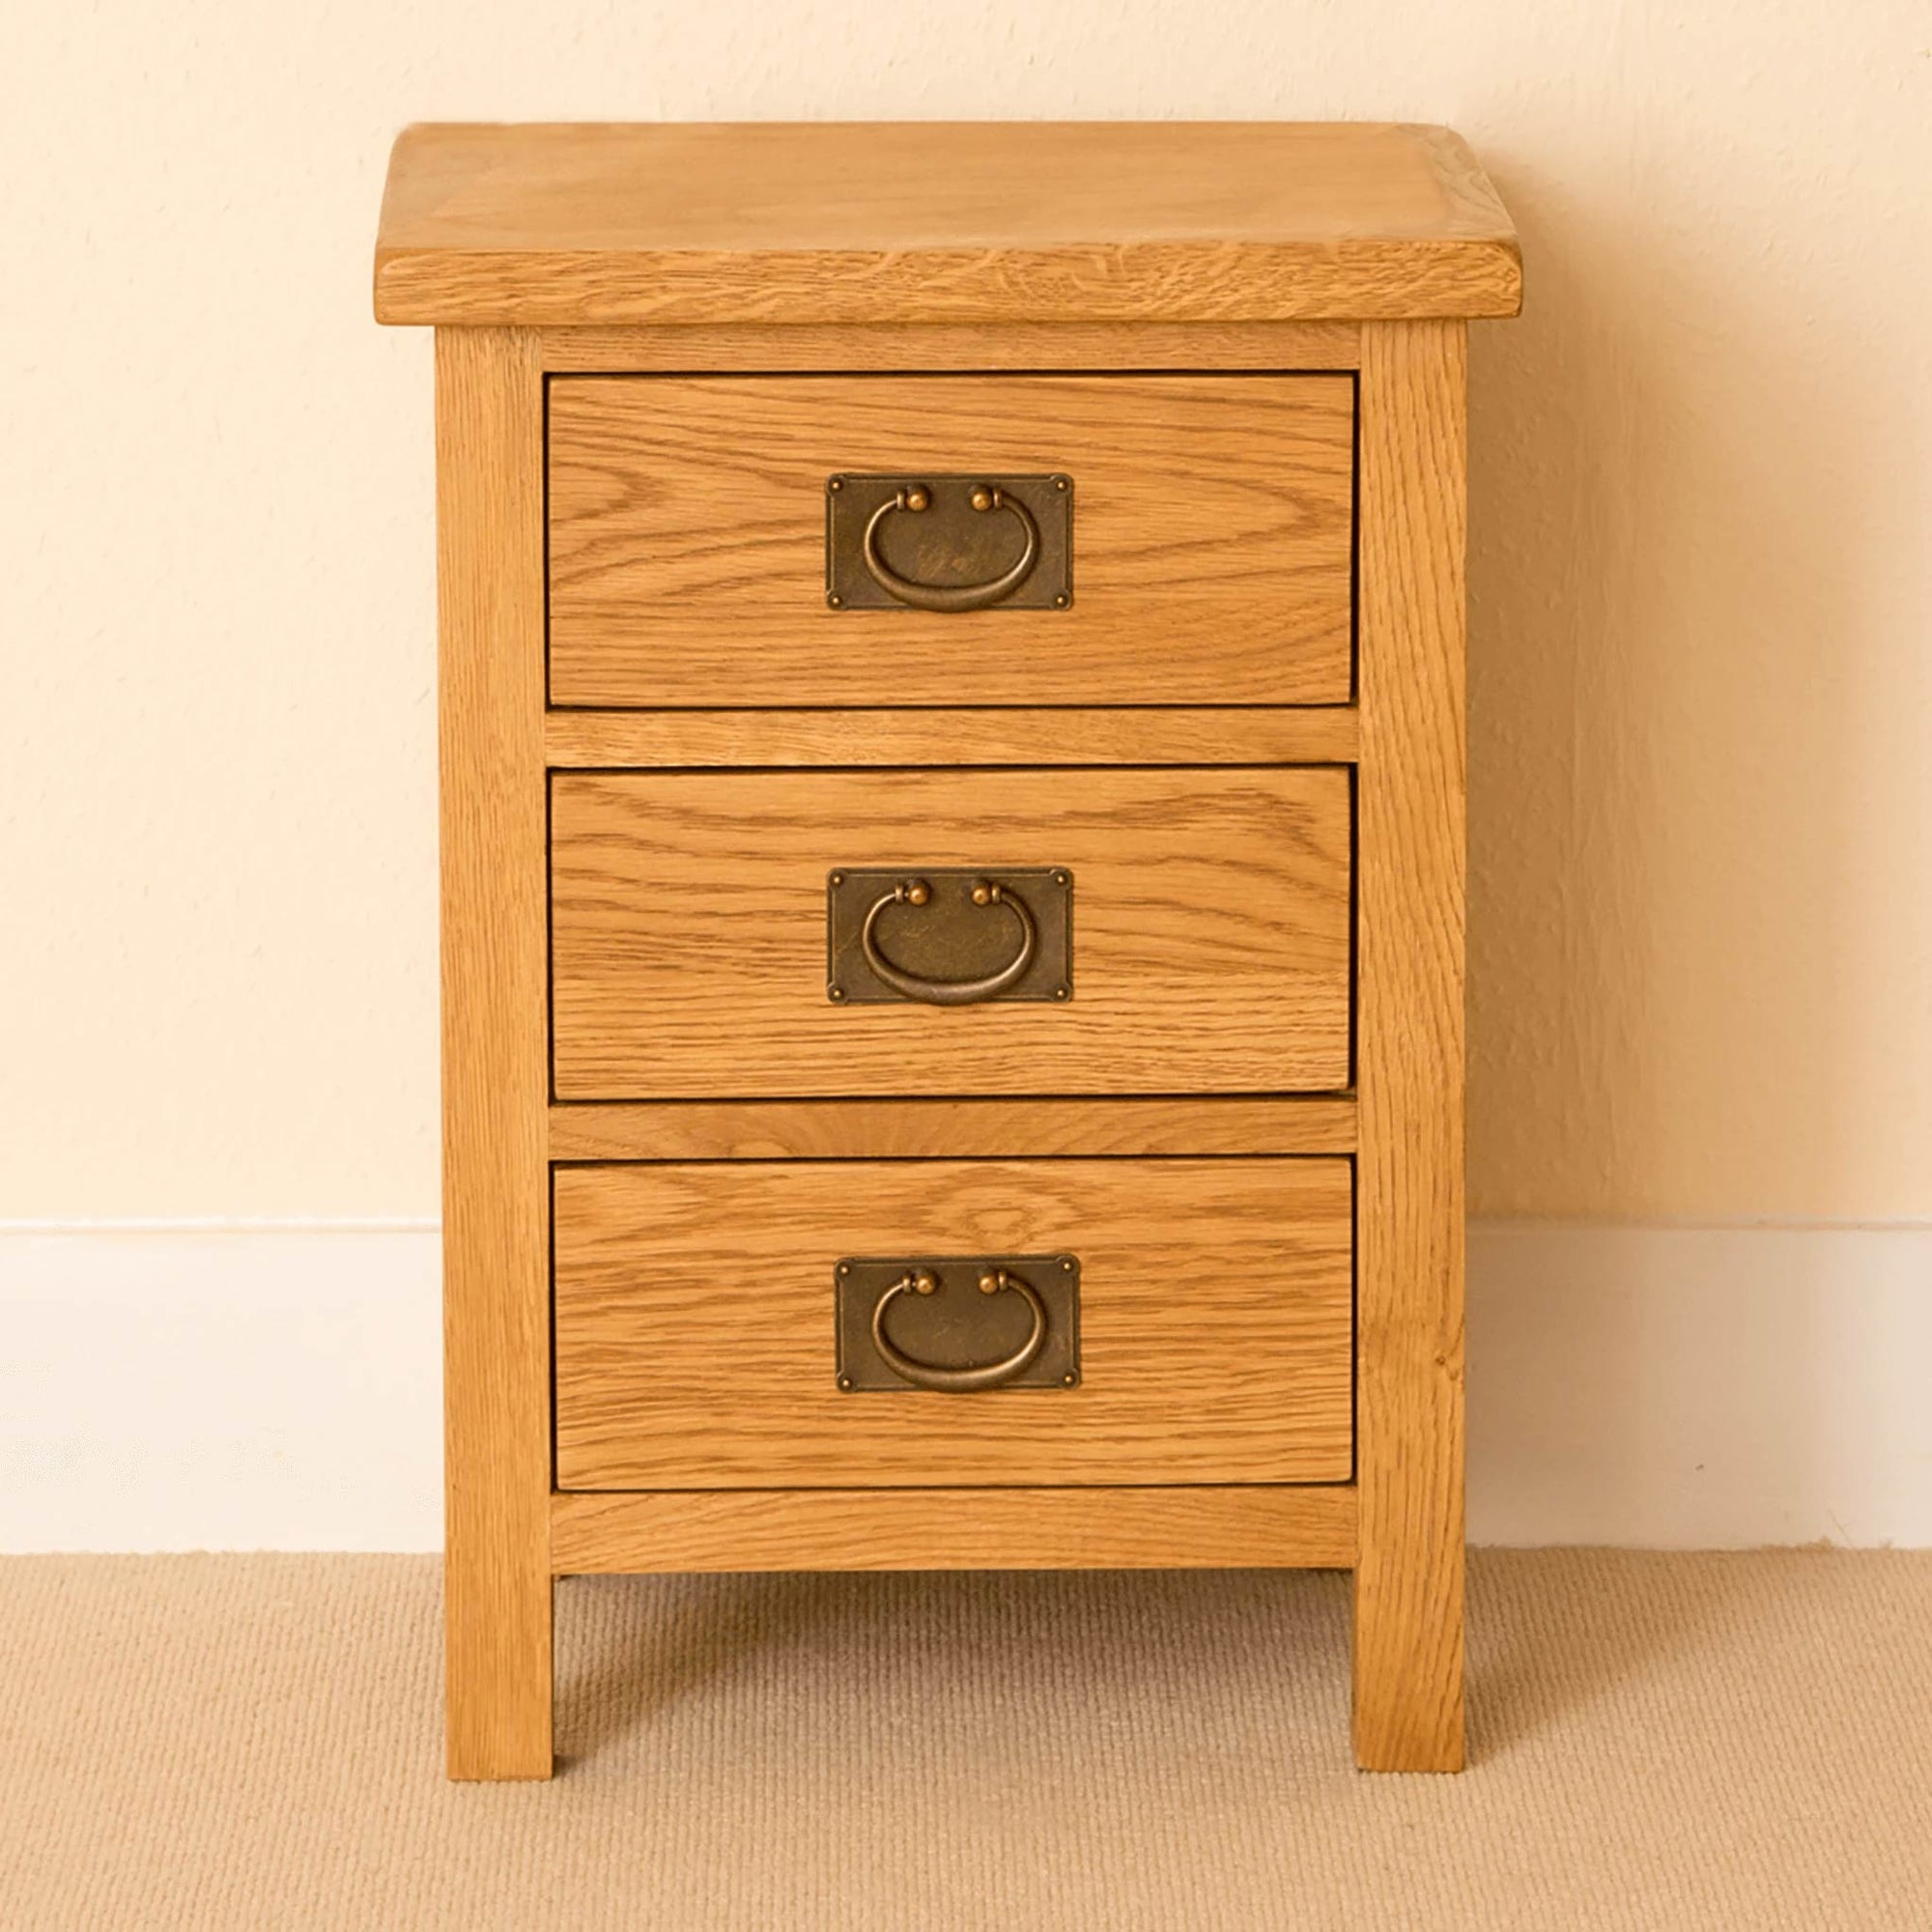 Lanner Waxed Oak Bedside Table 3 Drawer Chest Solid Wood Rustic Roseland Furniture